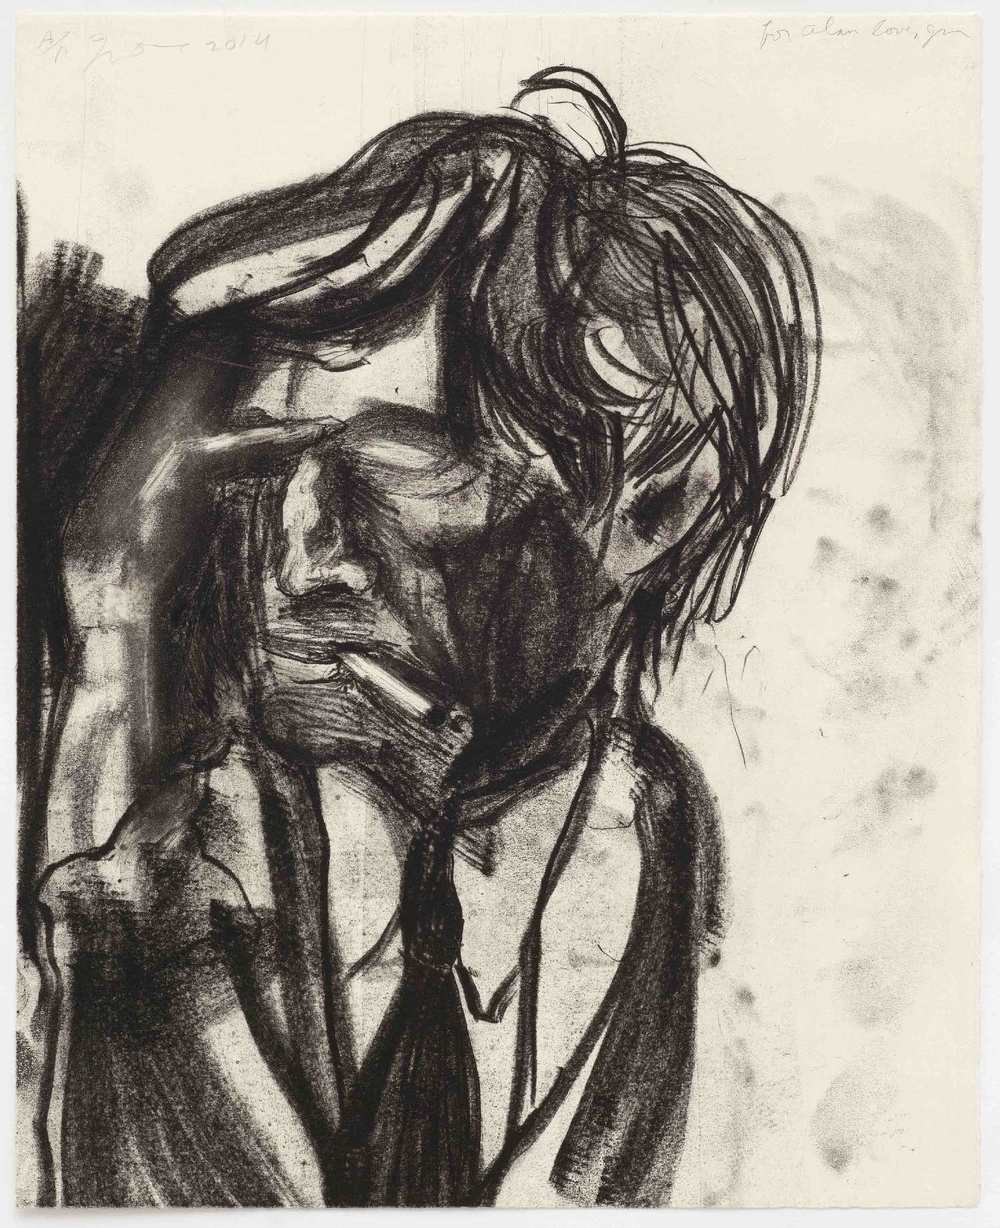 Jim Dine, Alan smoking at Sydney Close in the 90's, 2014, Copper plate etching on Hahnemuhle Copperplate warm white paper, Image courtesy Jim Dine and Alan Cristea Gallery, London